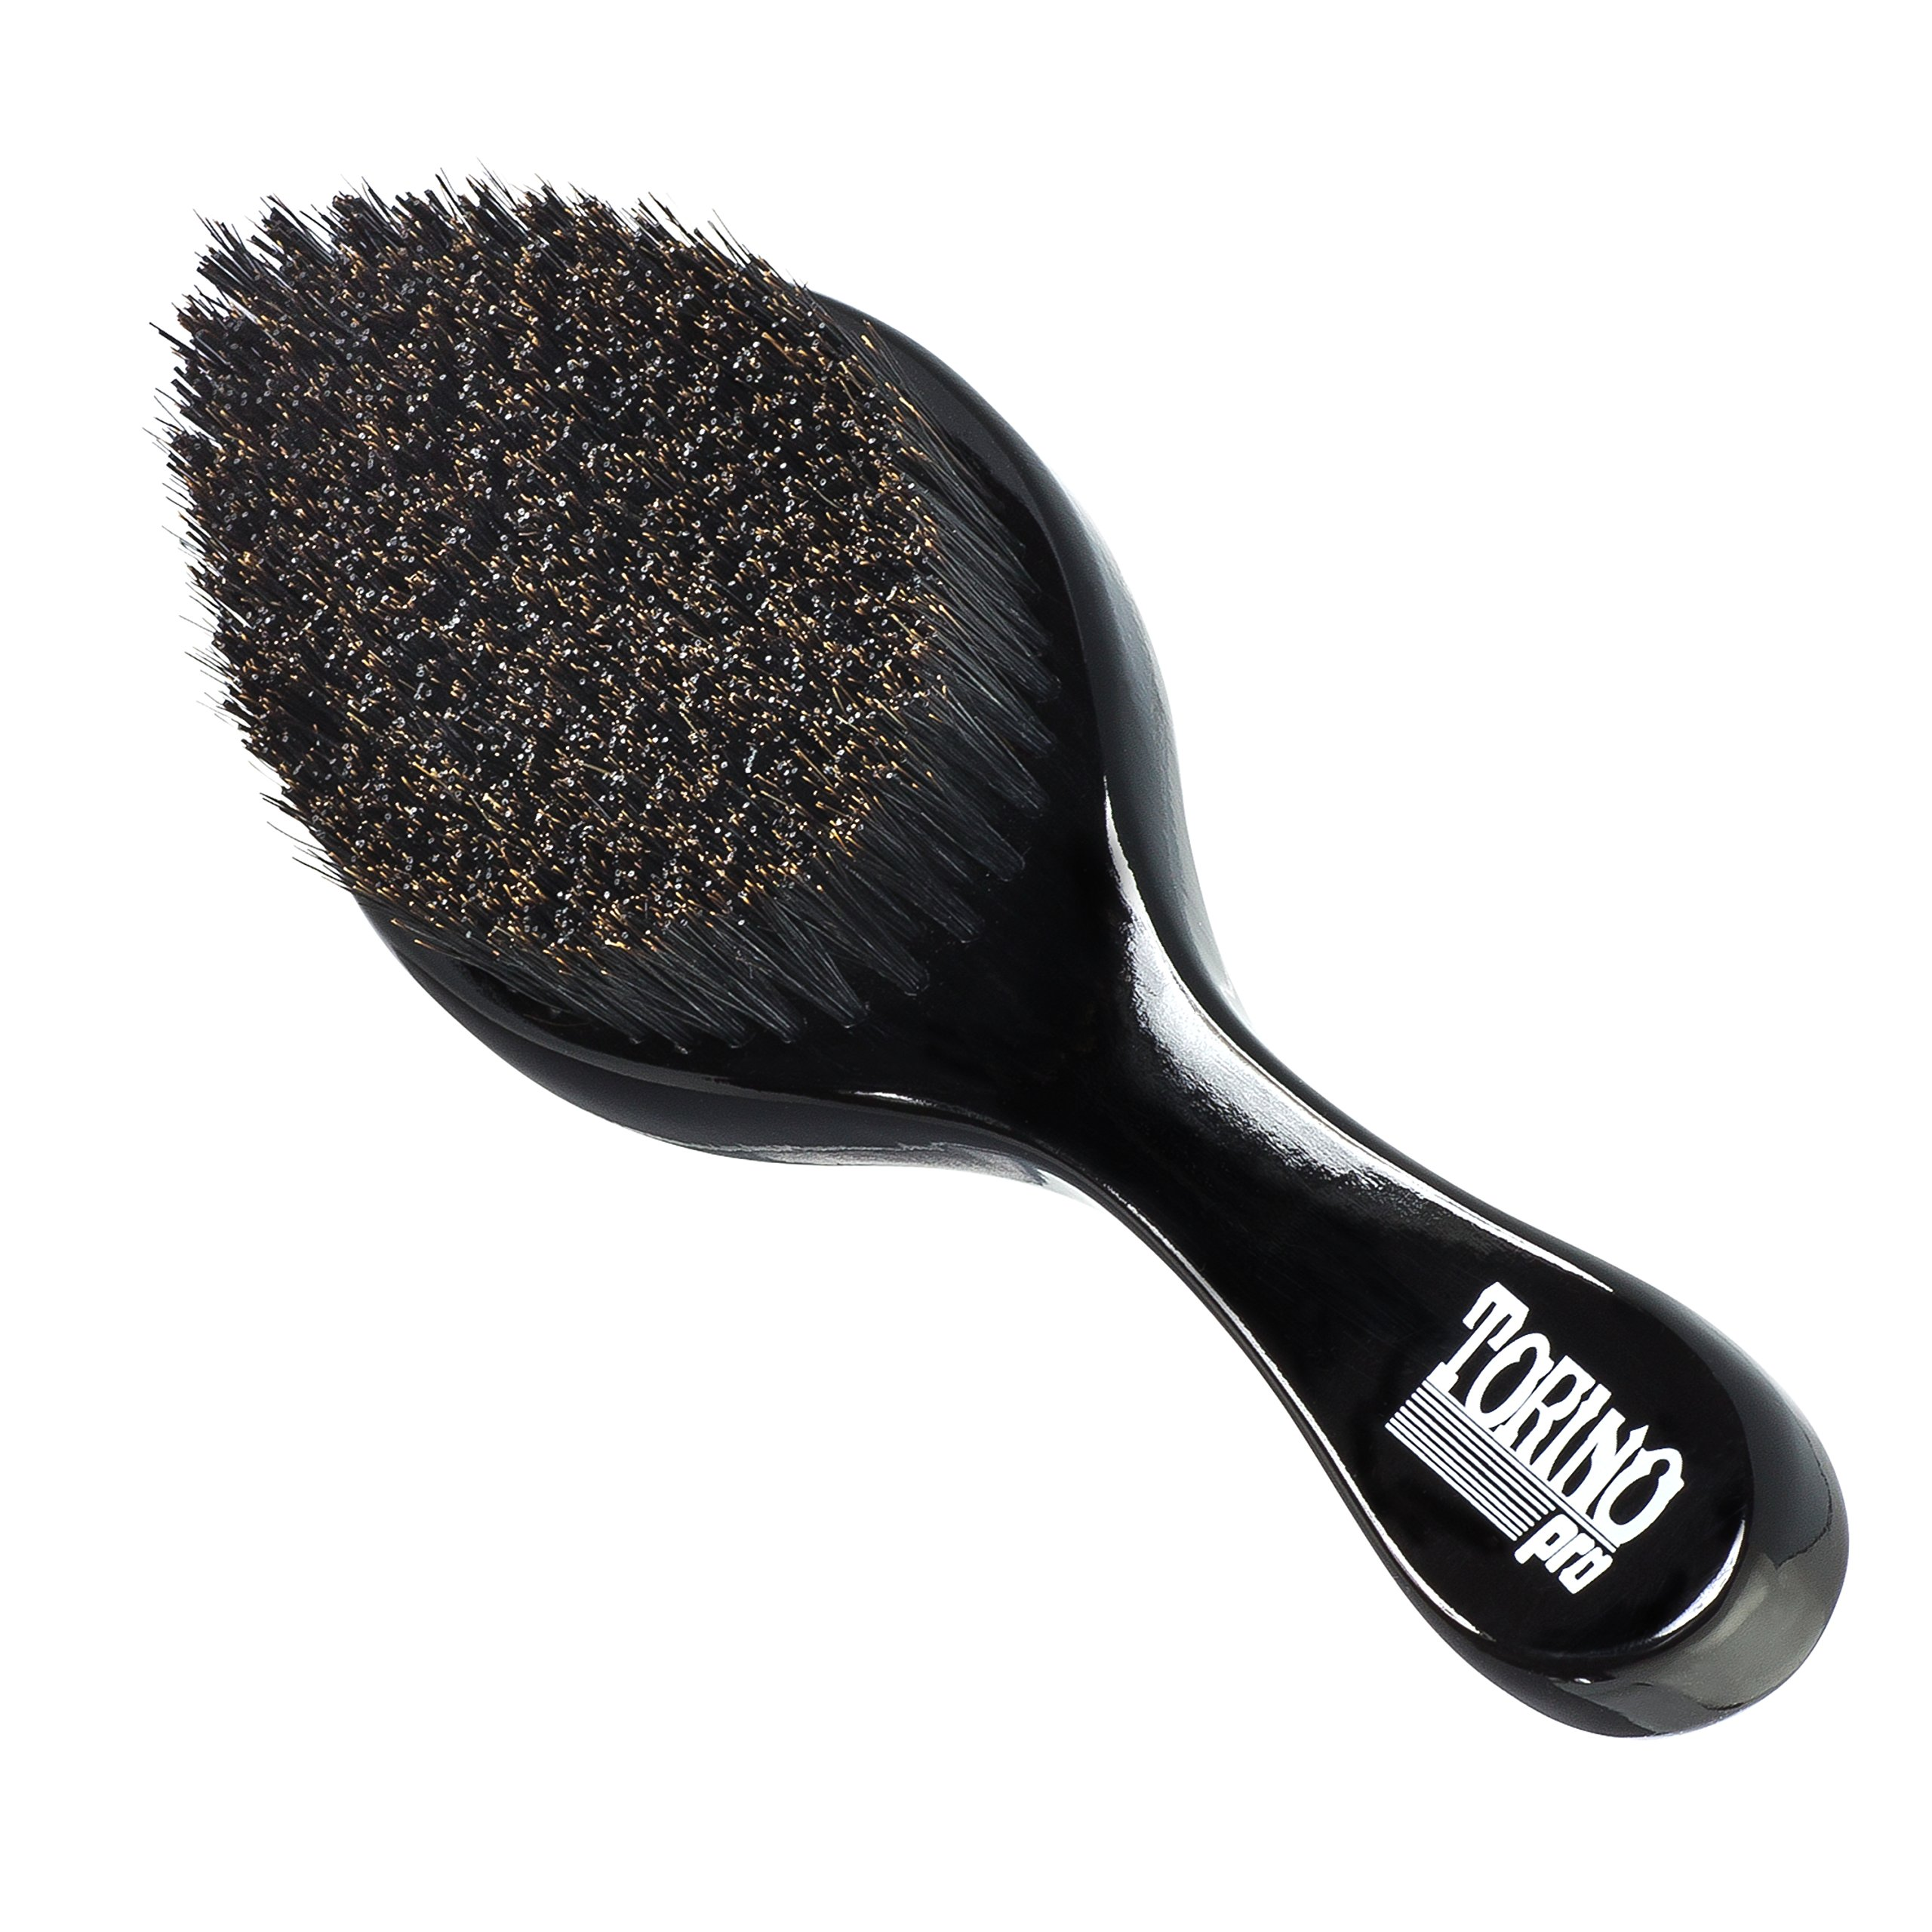 Torino Pro Curve Wave Brush by Brush King - #450 - Medium Hard Curve Wave Brush - Made with Reinforced Boar & Nylon Bristles -True Texture Medium Hard 360 Waves Brushes by Torino Pro (Image #1)